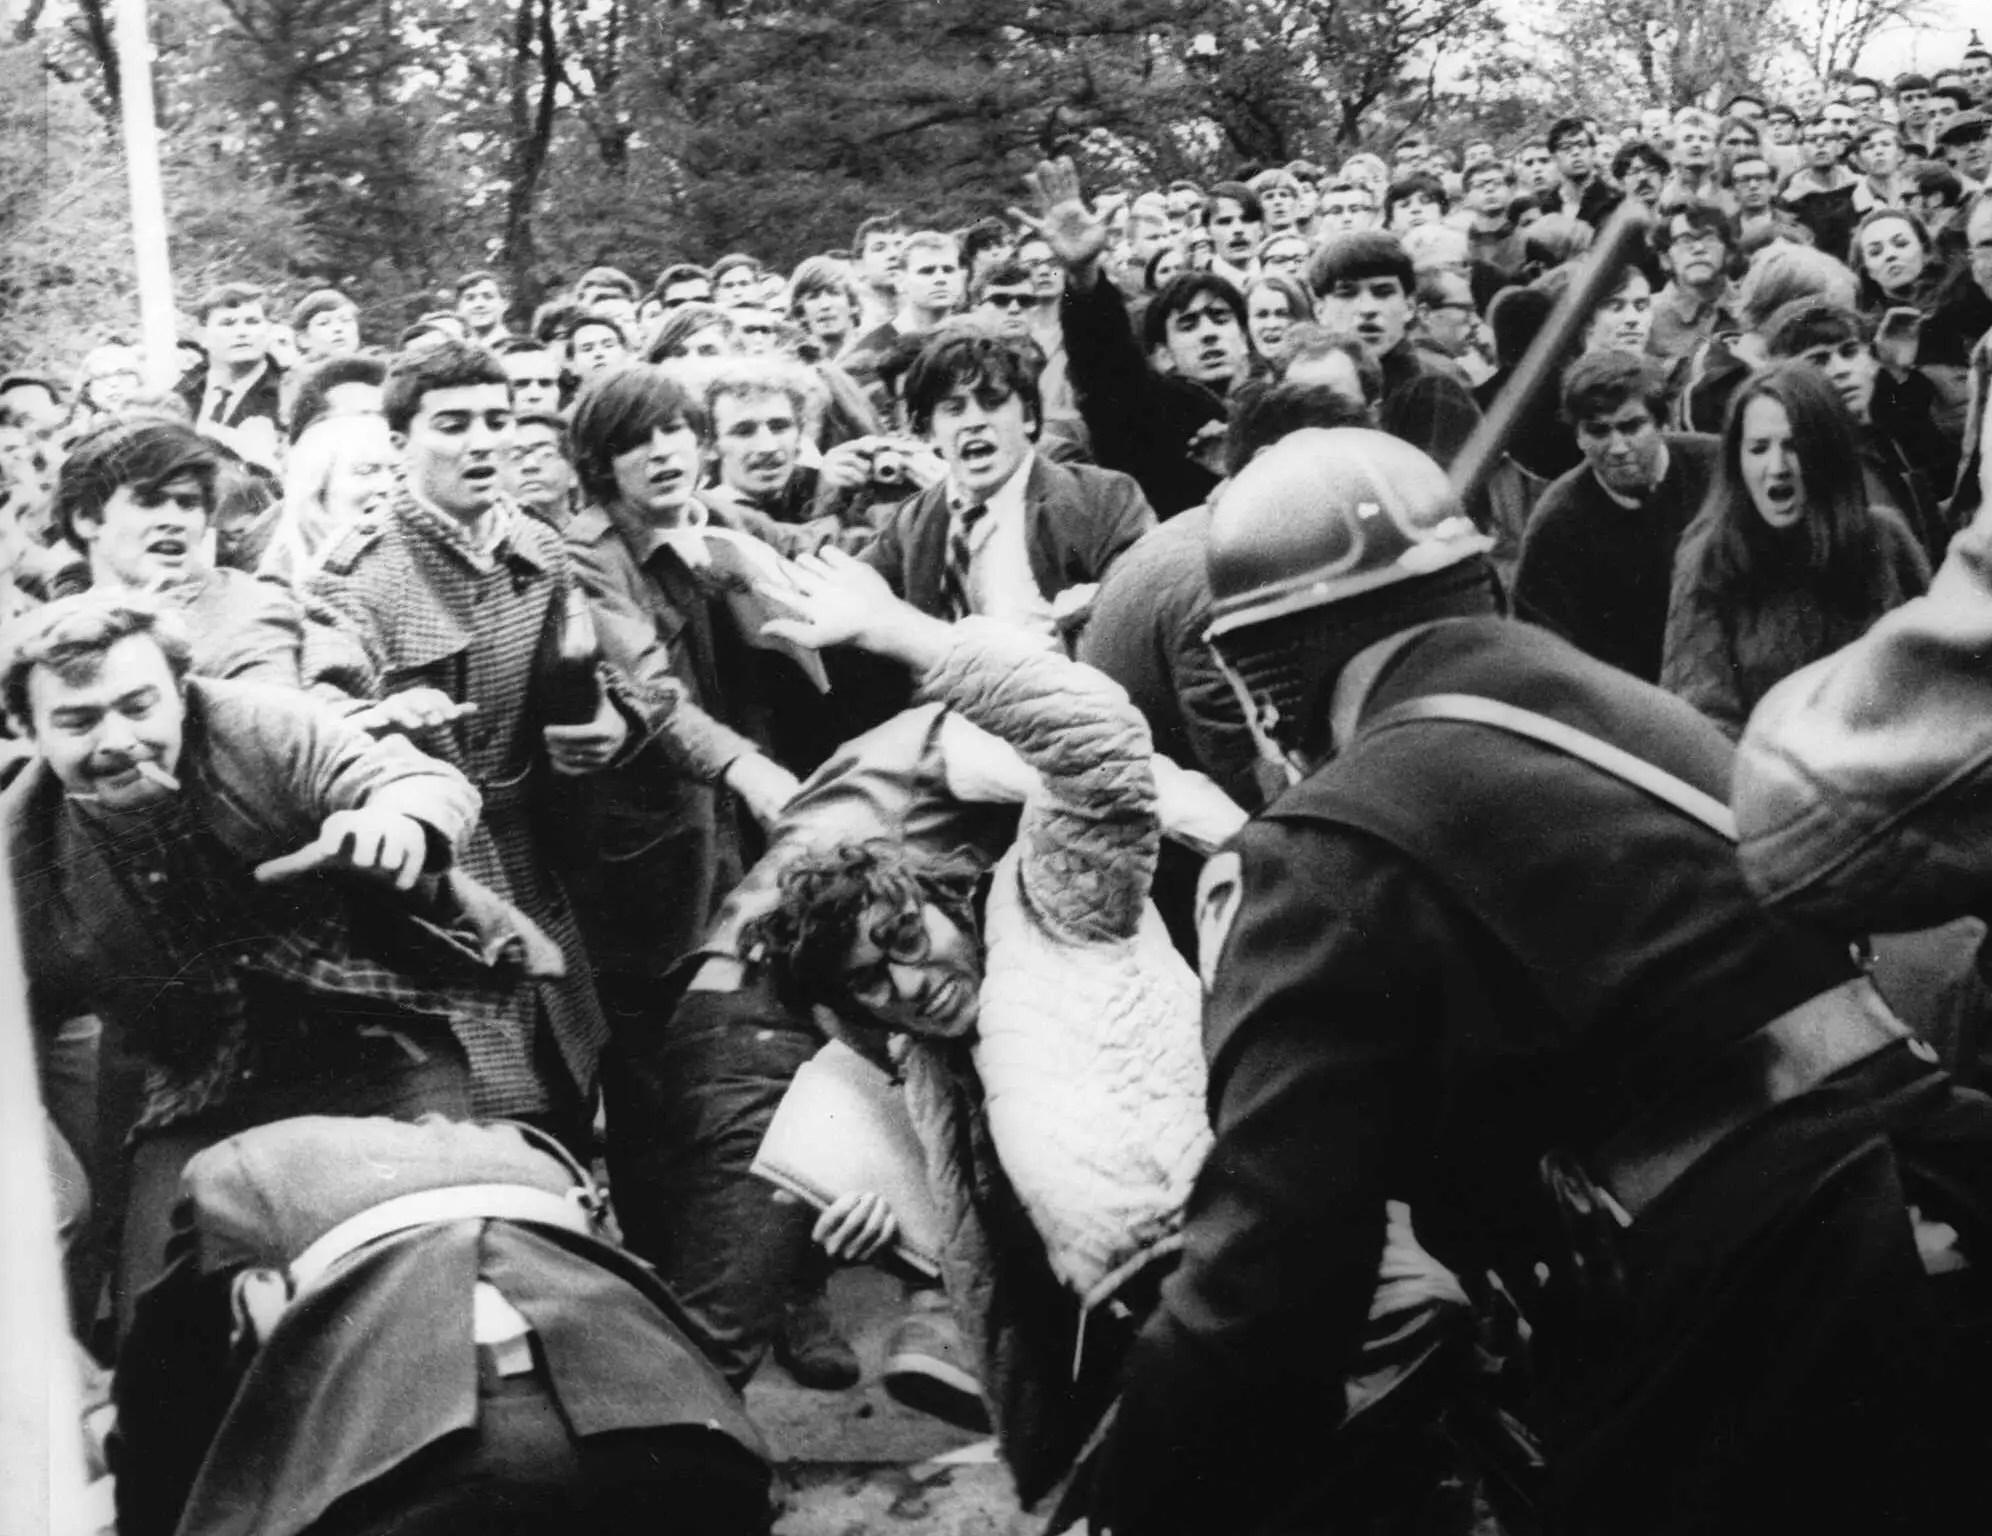 Universities have historically been breeding grounds for contemporary activism. Starting in the early 1960s, many college students protested in opposition to the Vietnam War ...